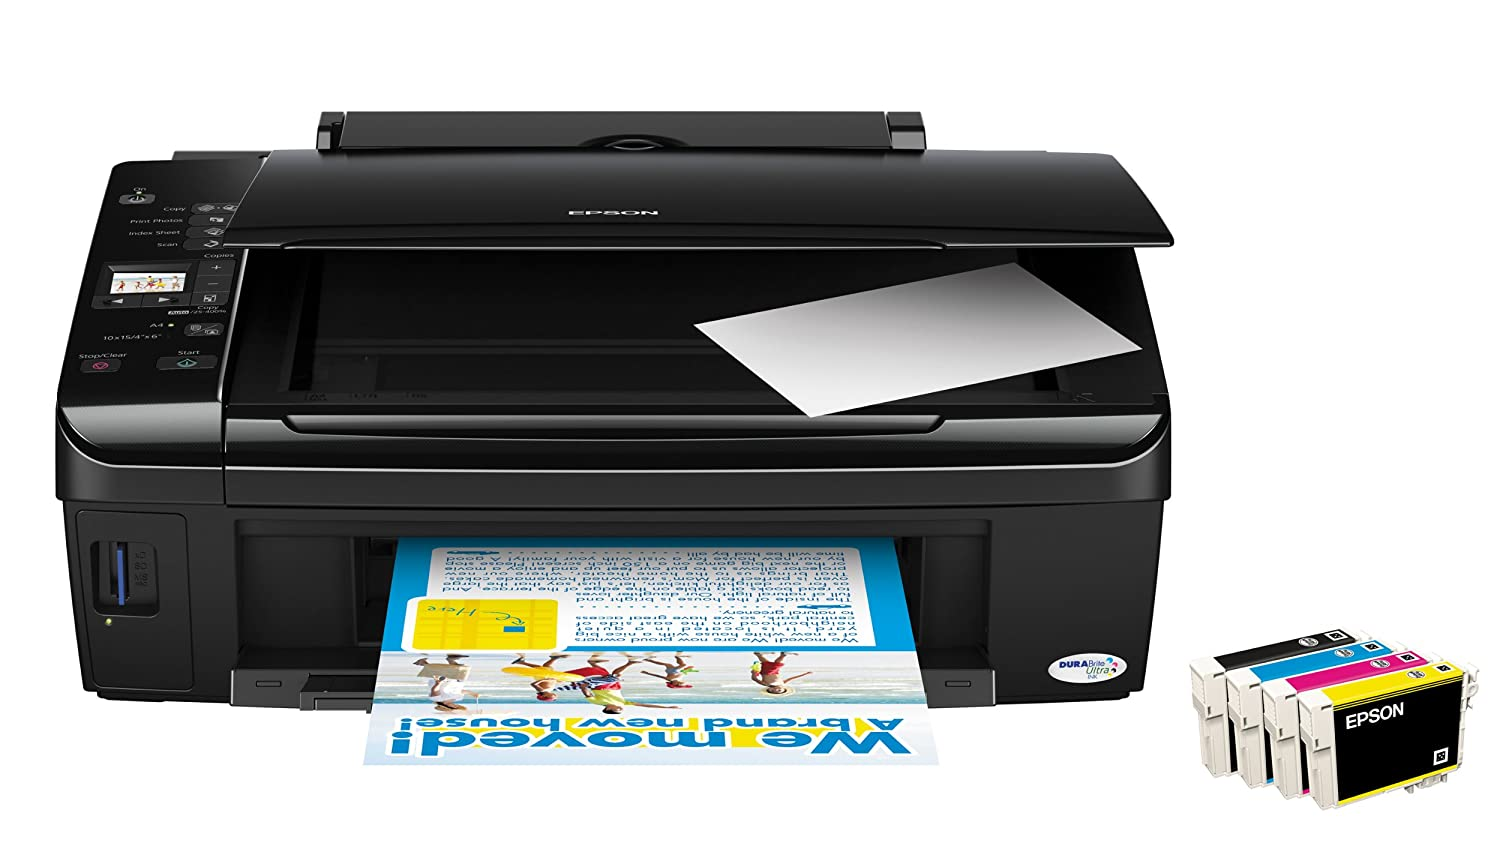 Epson Stylus SX210 Multifunctional Printer: Amazon.co.uk: Computers &  Accessories